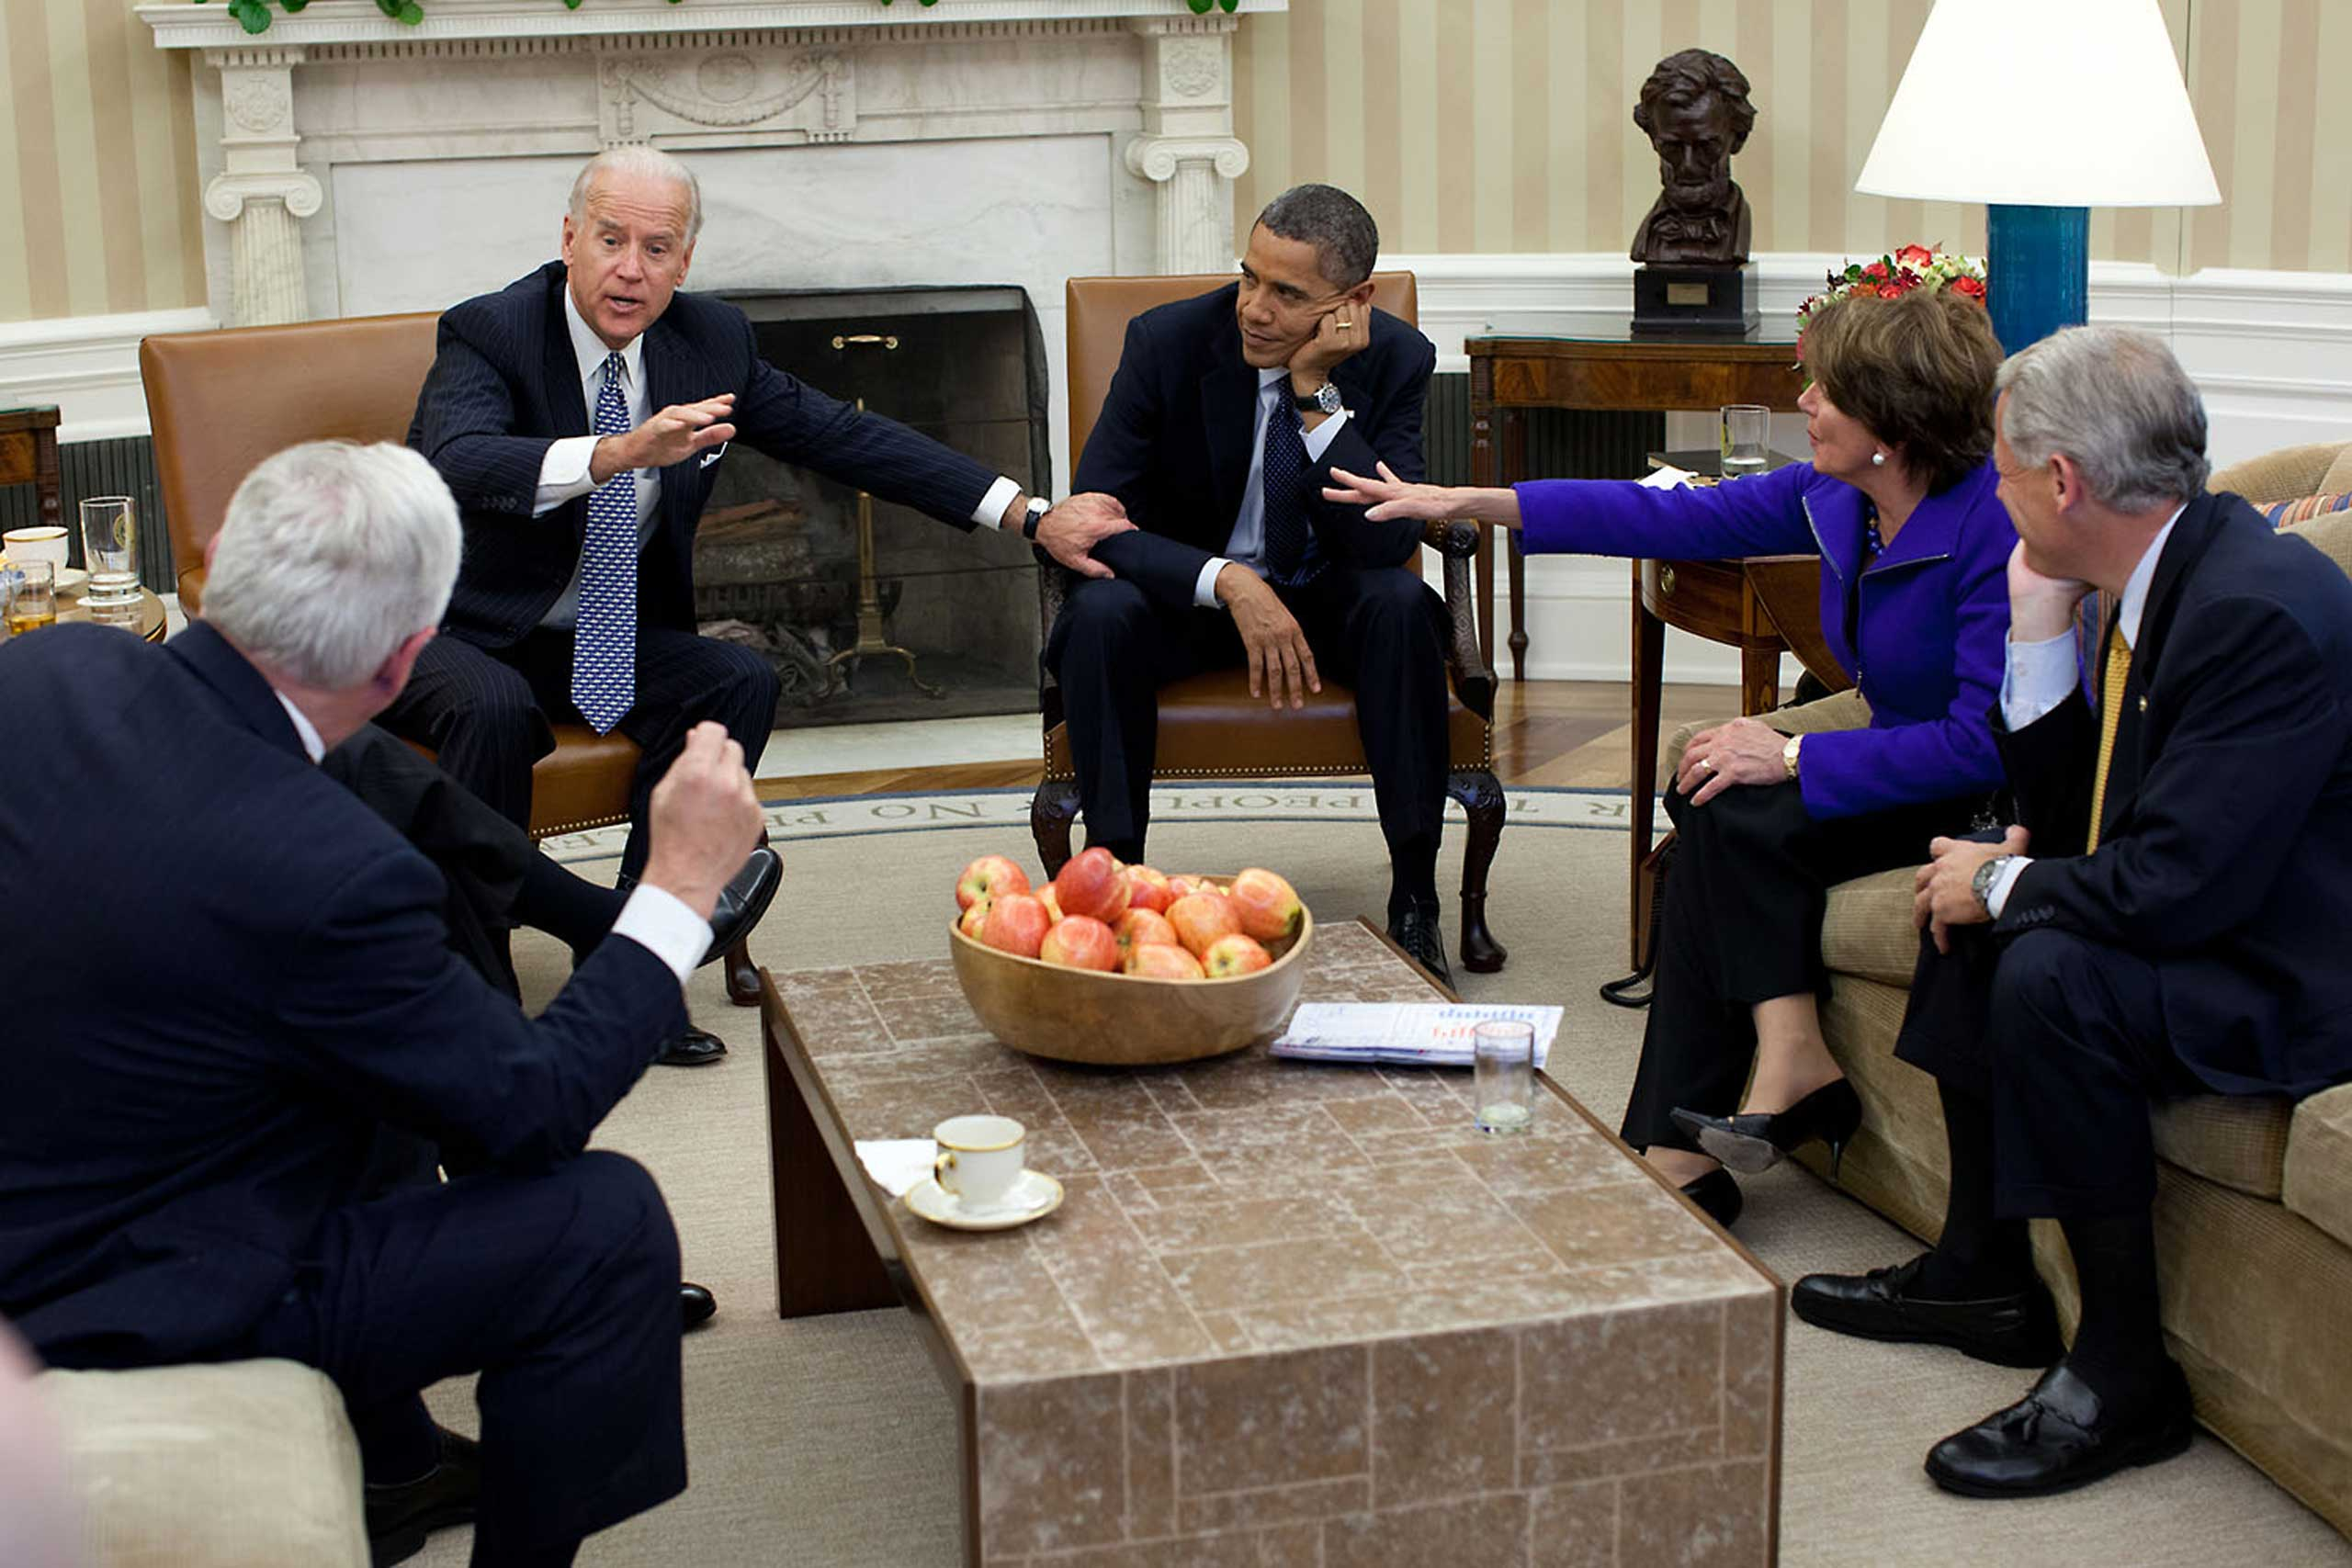 Usually the best moments at meetings are before and after the participants actually sit down. In this case, though, there was an interesting juxtaposition of gestures as the President and Vice President met with the House Democratic Leadership in the Oval Office, Nov. 1, 2011.